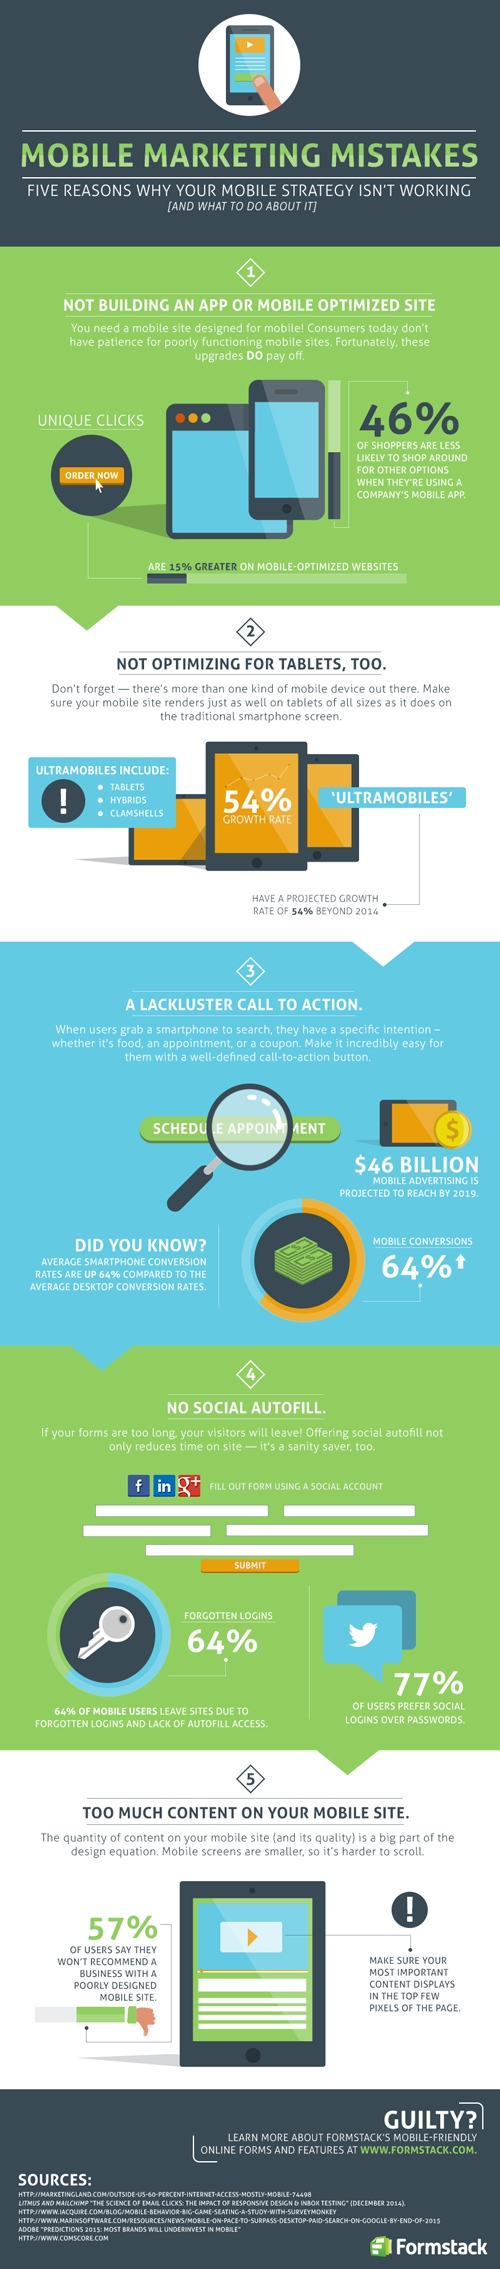 5 Mobile Marketing Mistakes Infographic Image